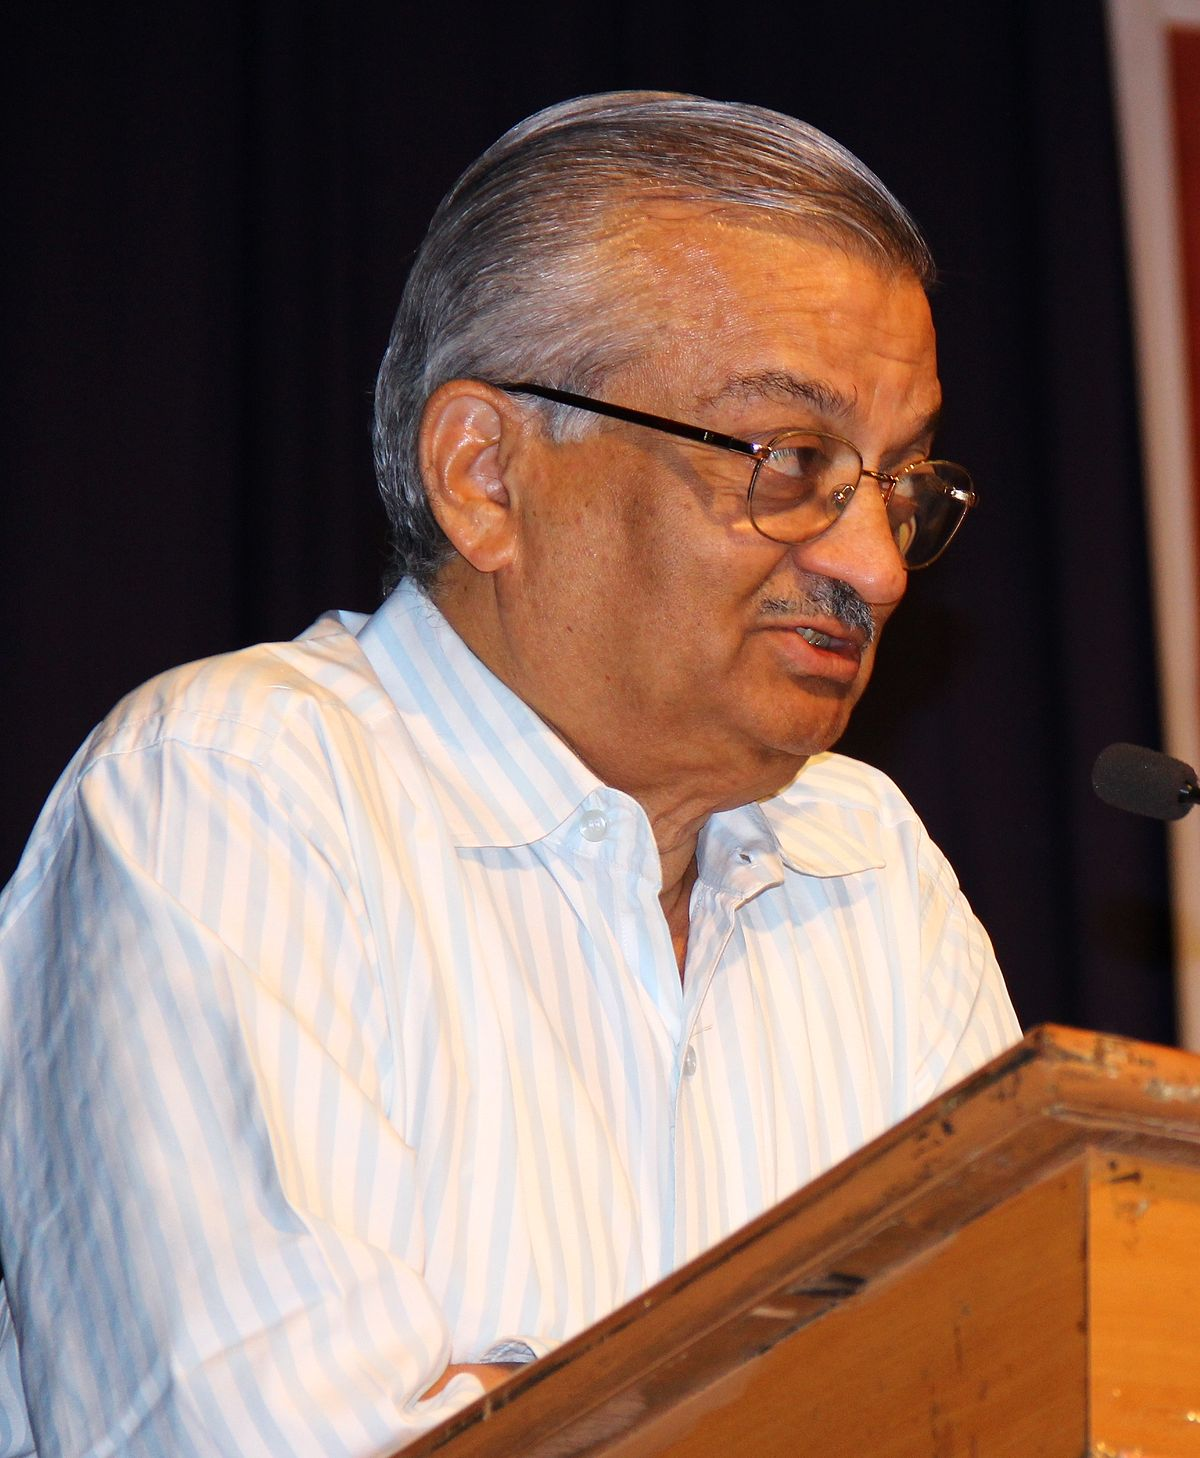 Anil kakodkar wikipedia for K murali mohan rao director wikipedia